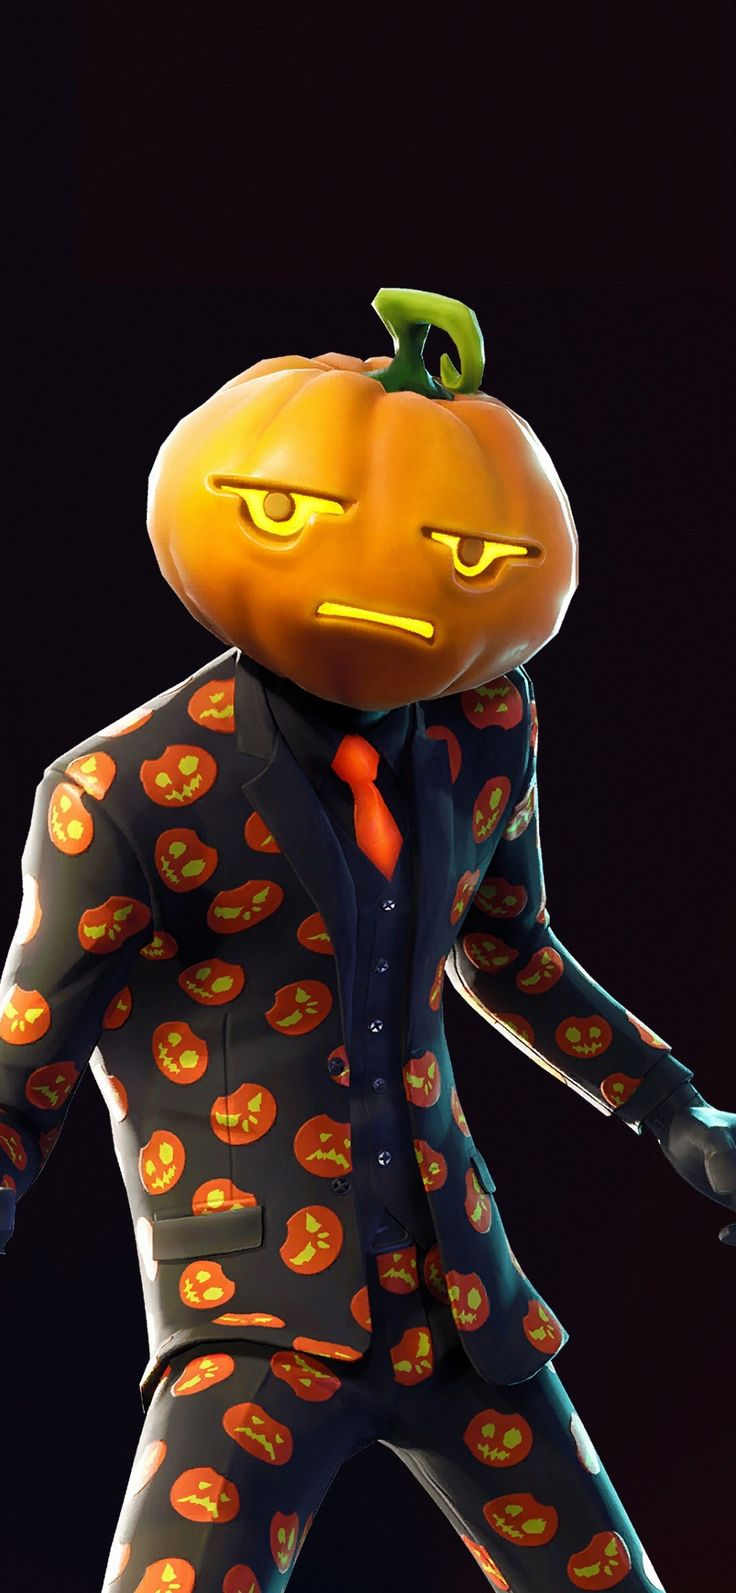 Halloween, pumpkin, pumphead, skin, Fortnite, 2018